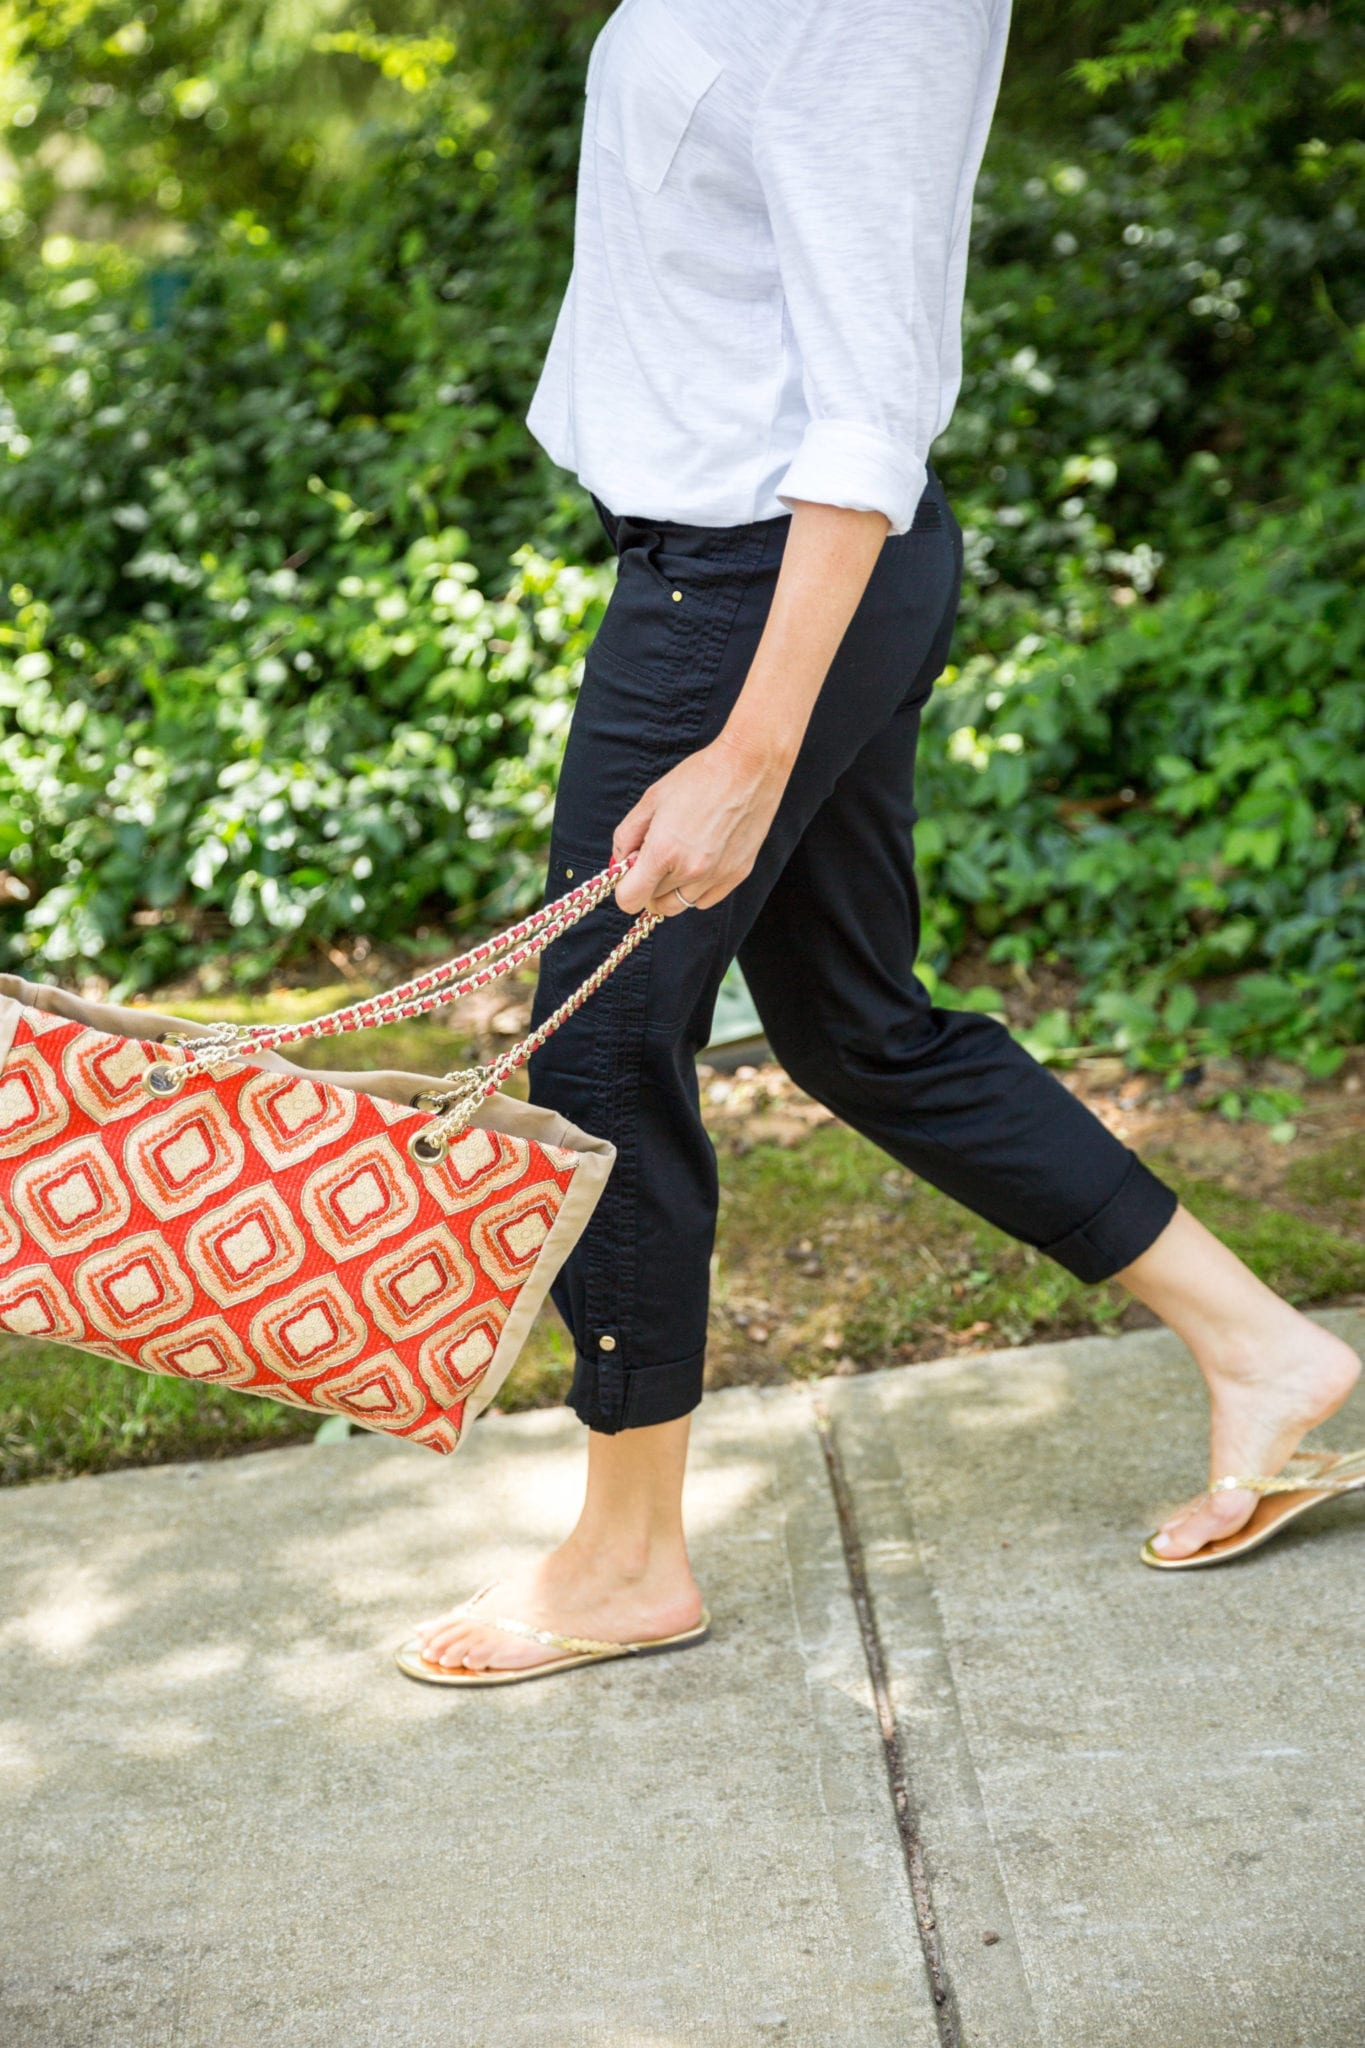 Orange and yellow beaded handbag from Chicos on sale. Black utility pants with gold button detail.